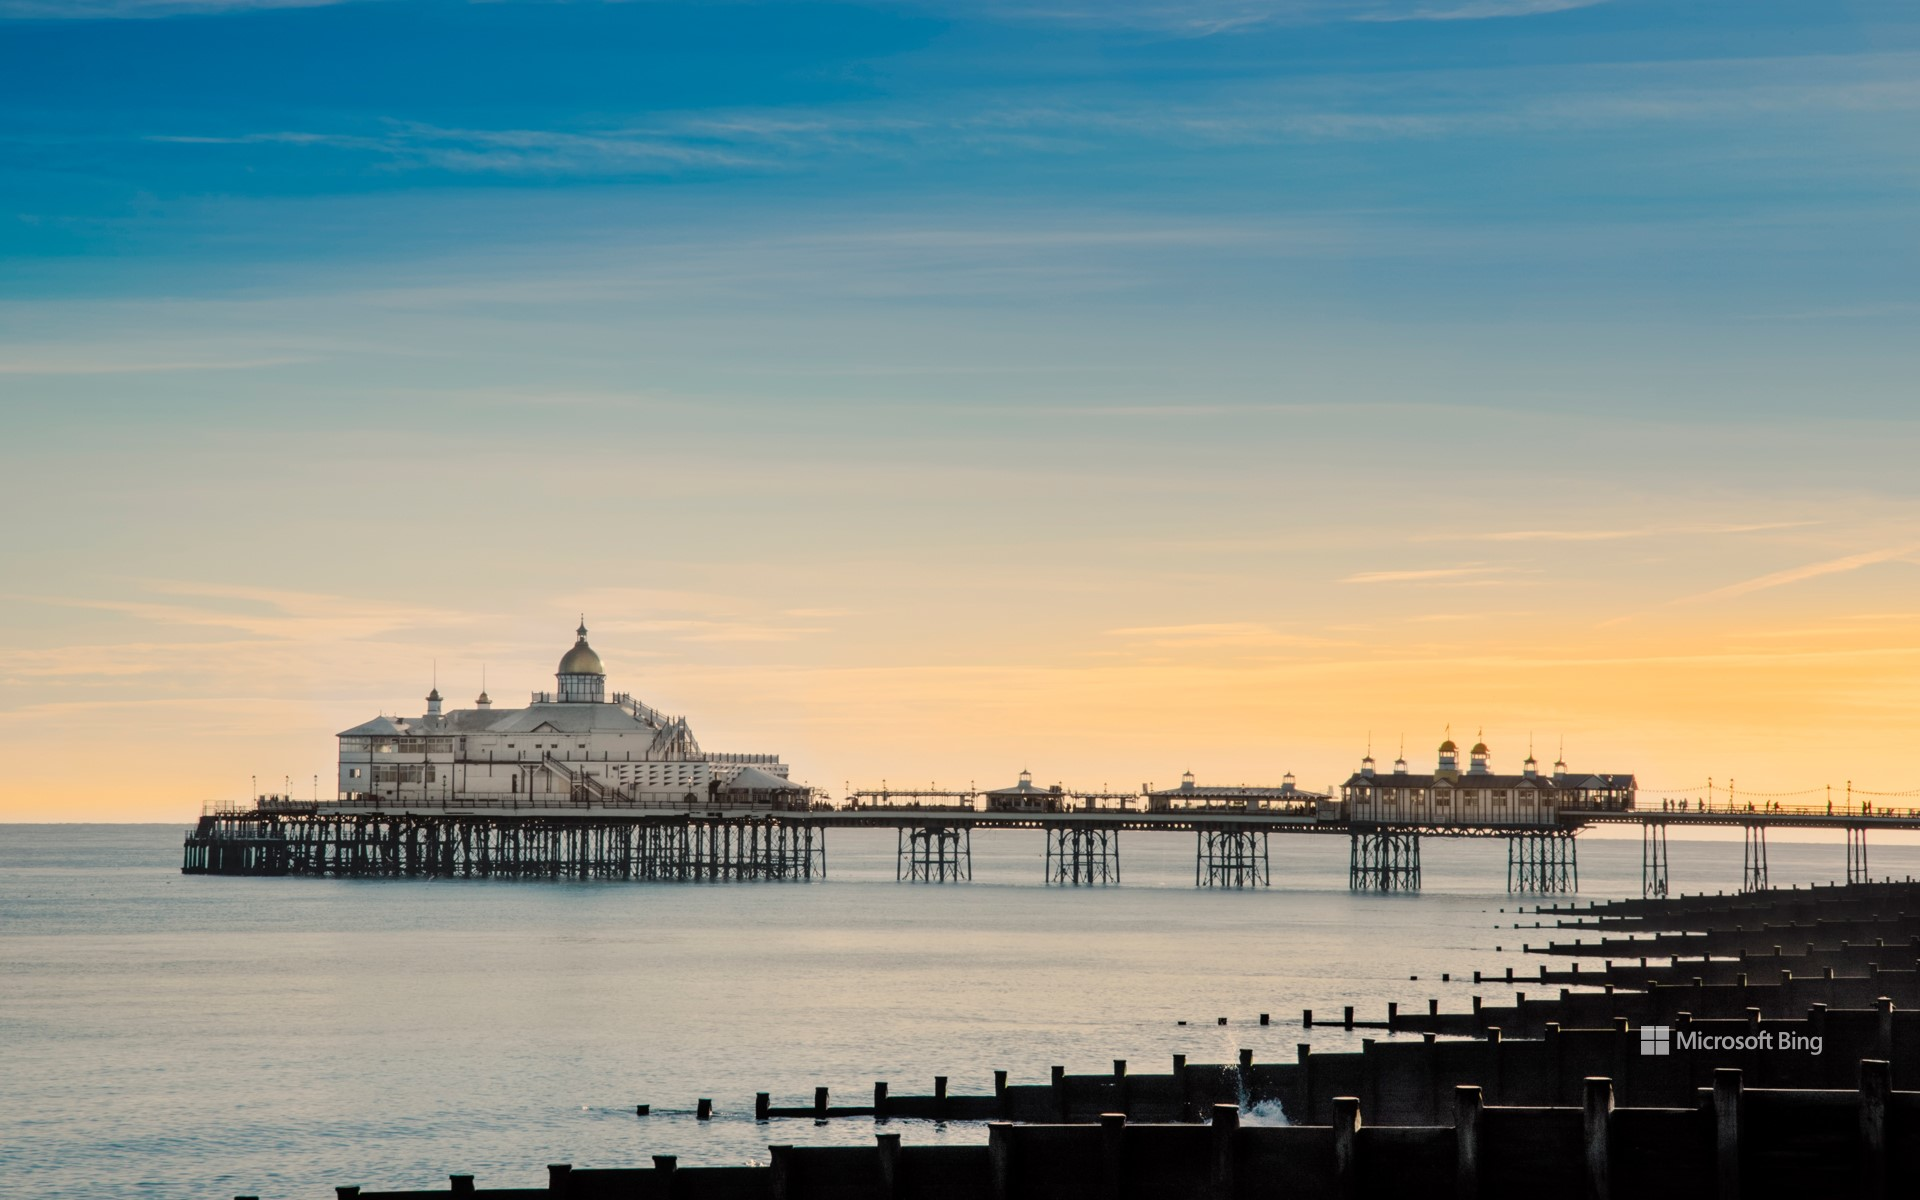 View along the beach to Eastbourne Pier, Eastbourne, East Sussex.